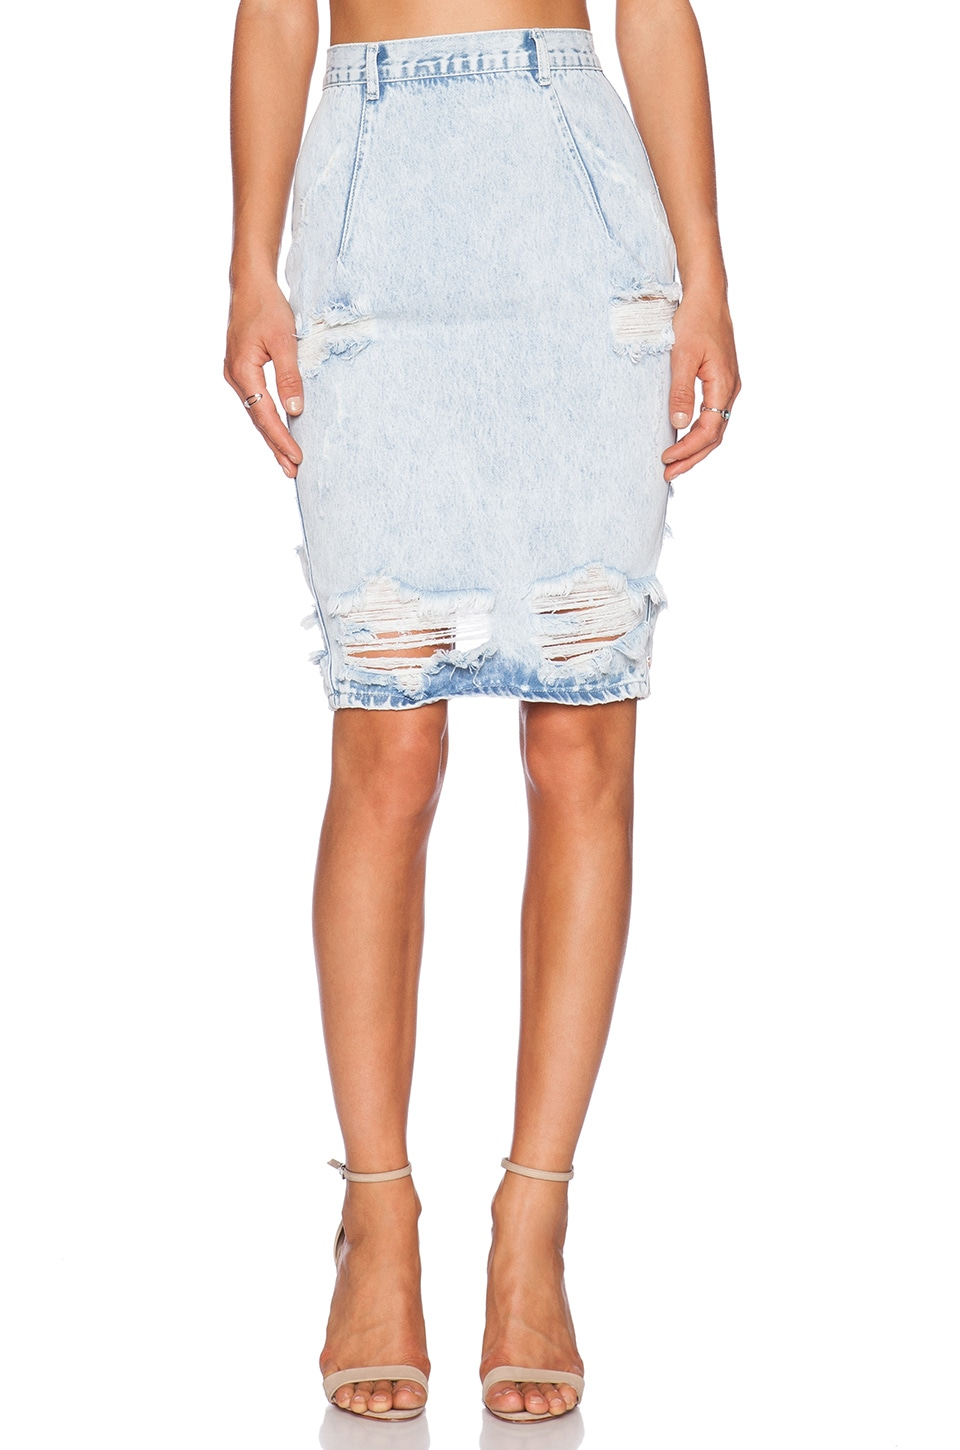 One Teaspoon Free Love Skirt in Salty